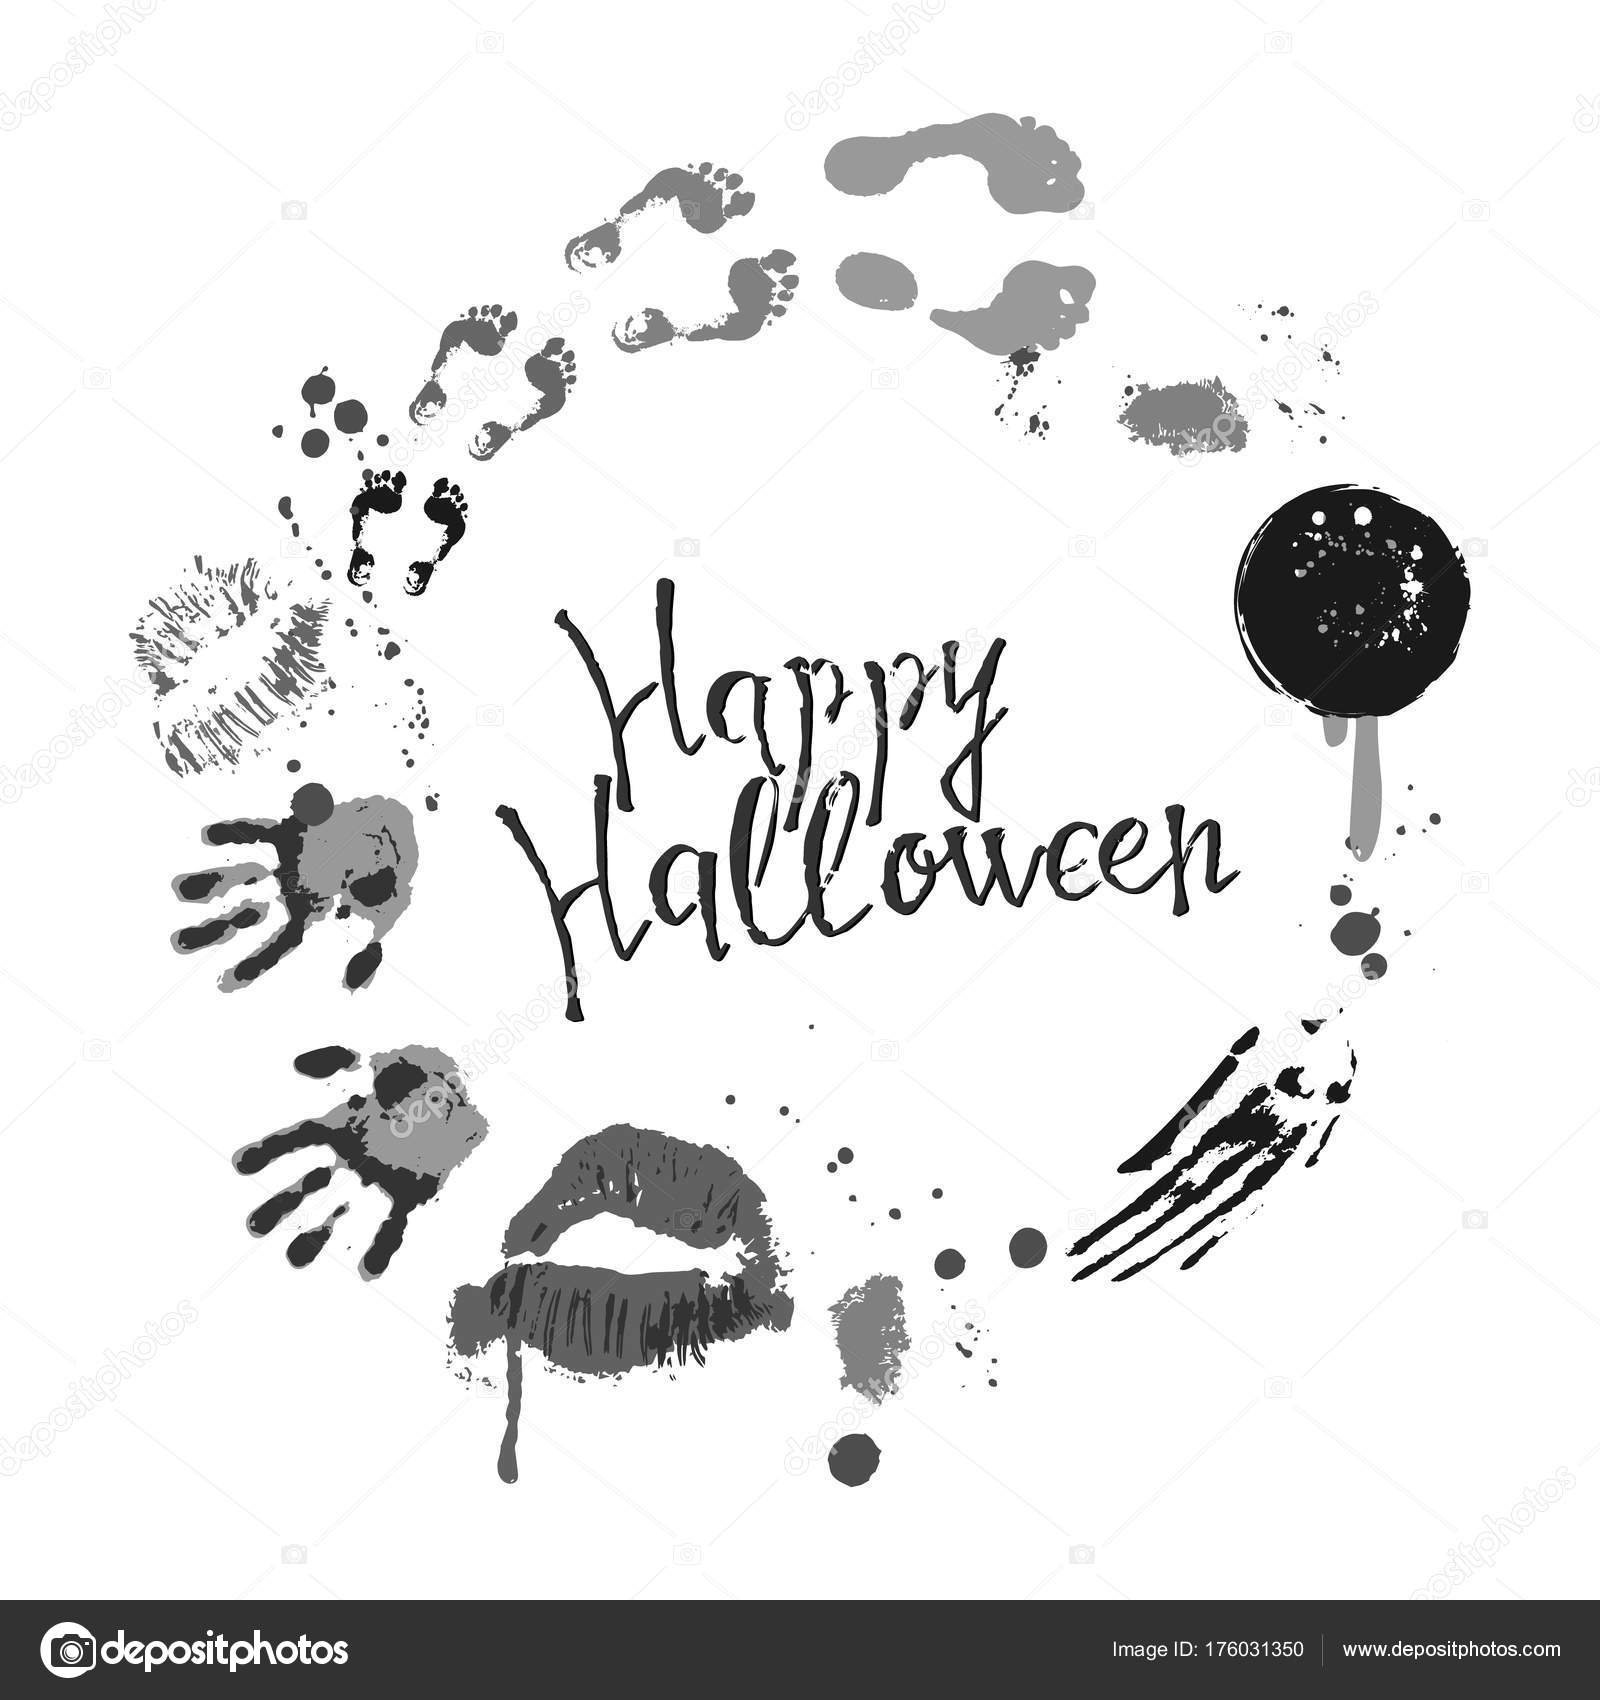 Vector of halloween poster stock vector olhayerofieieva 176031350 vector of halloween poster designs with halloween symbols and calligraphy scary halloween card party invitation design greetings words and phrases kristyandbryce Images